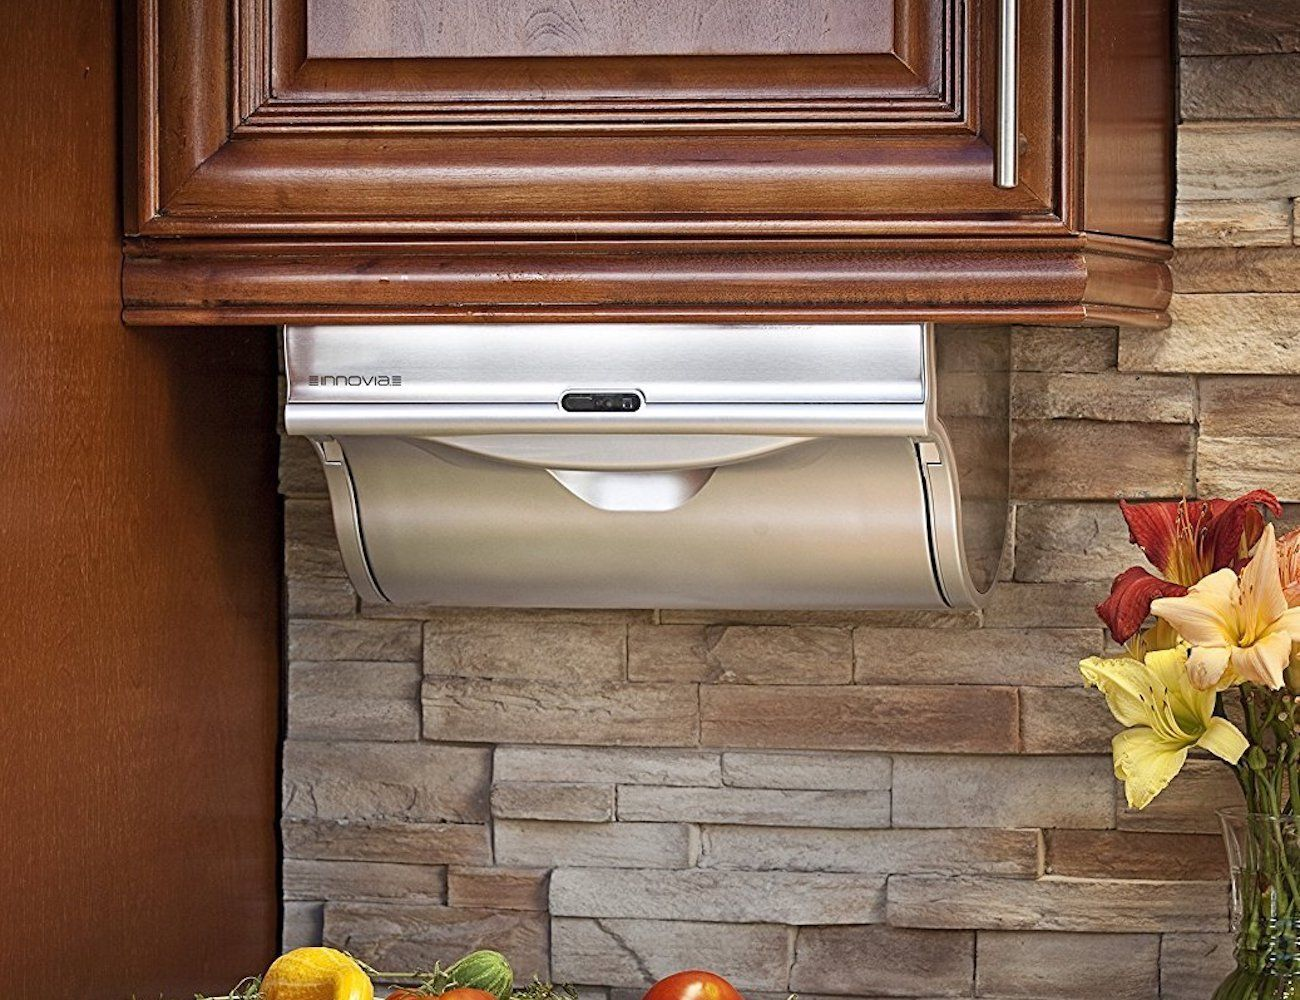 Innovia Under Cabinet Paper Towel Dispenser ...